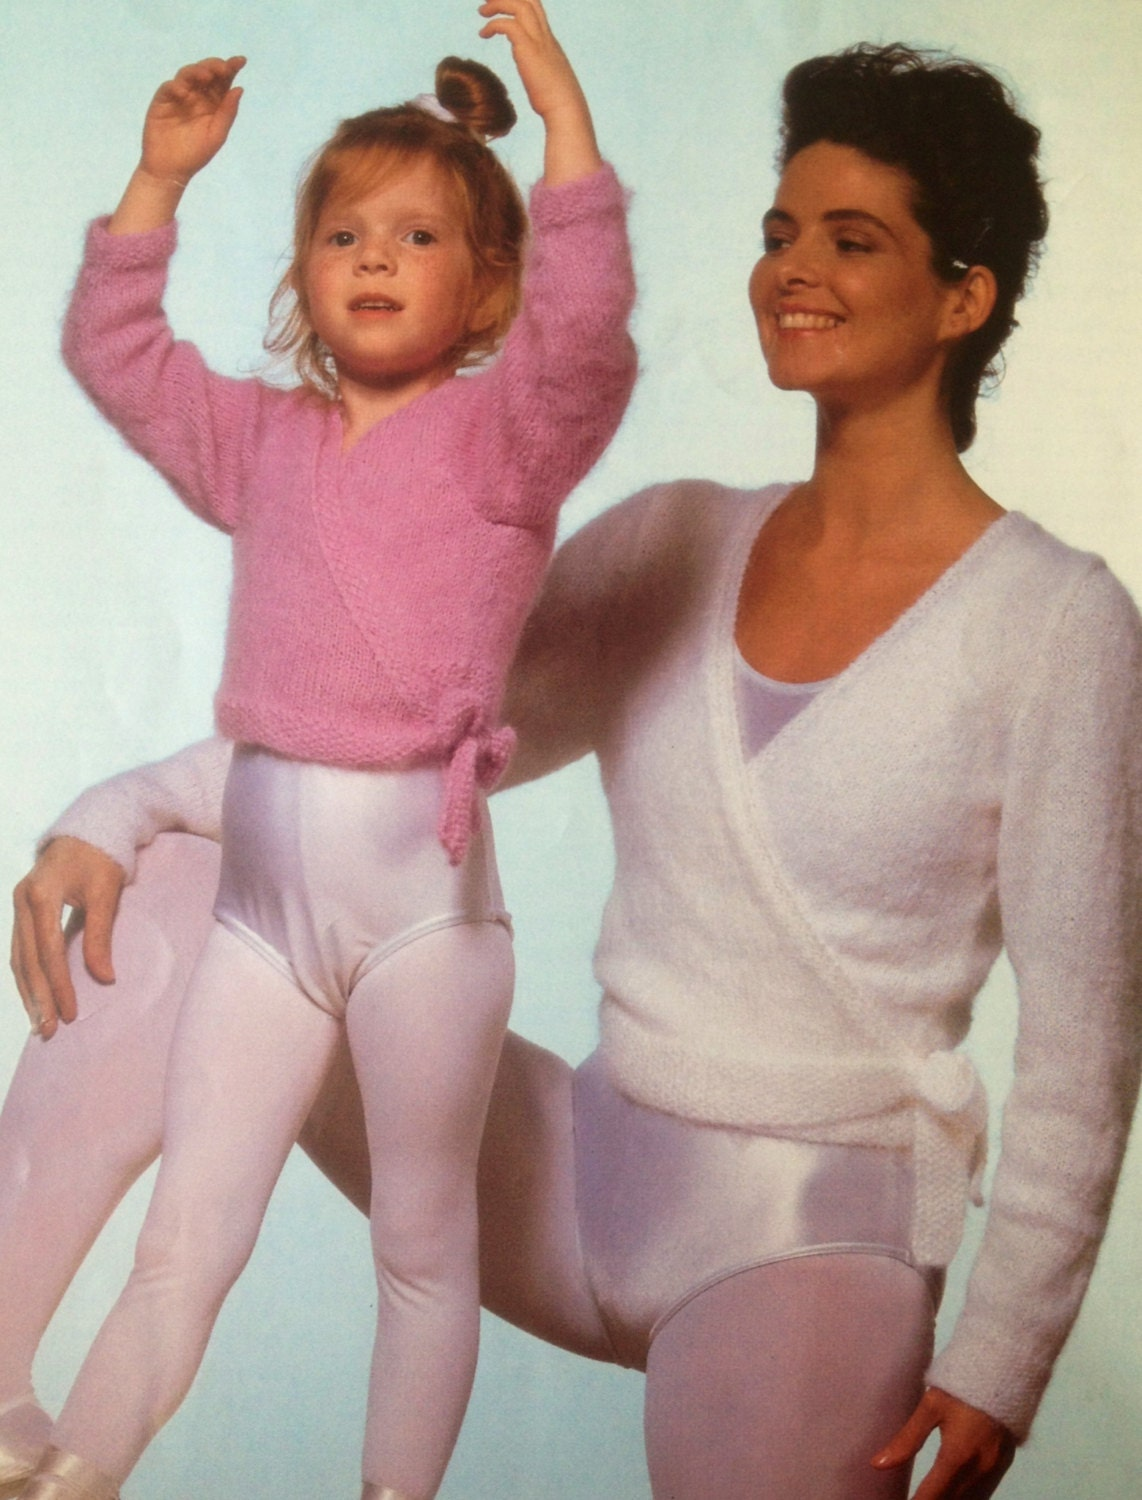 Knitting Pattern Childs Ballet Cardigan : ballet top knitting pattern cross over cardigan for girls and